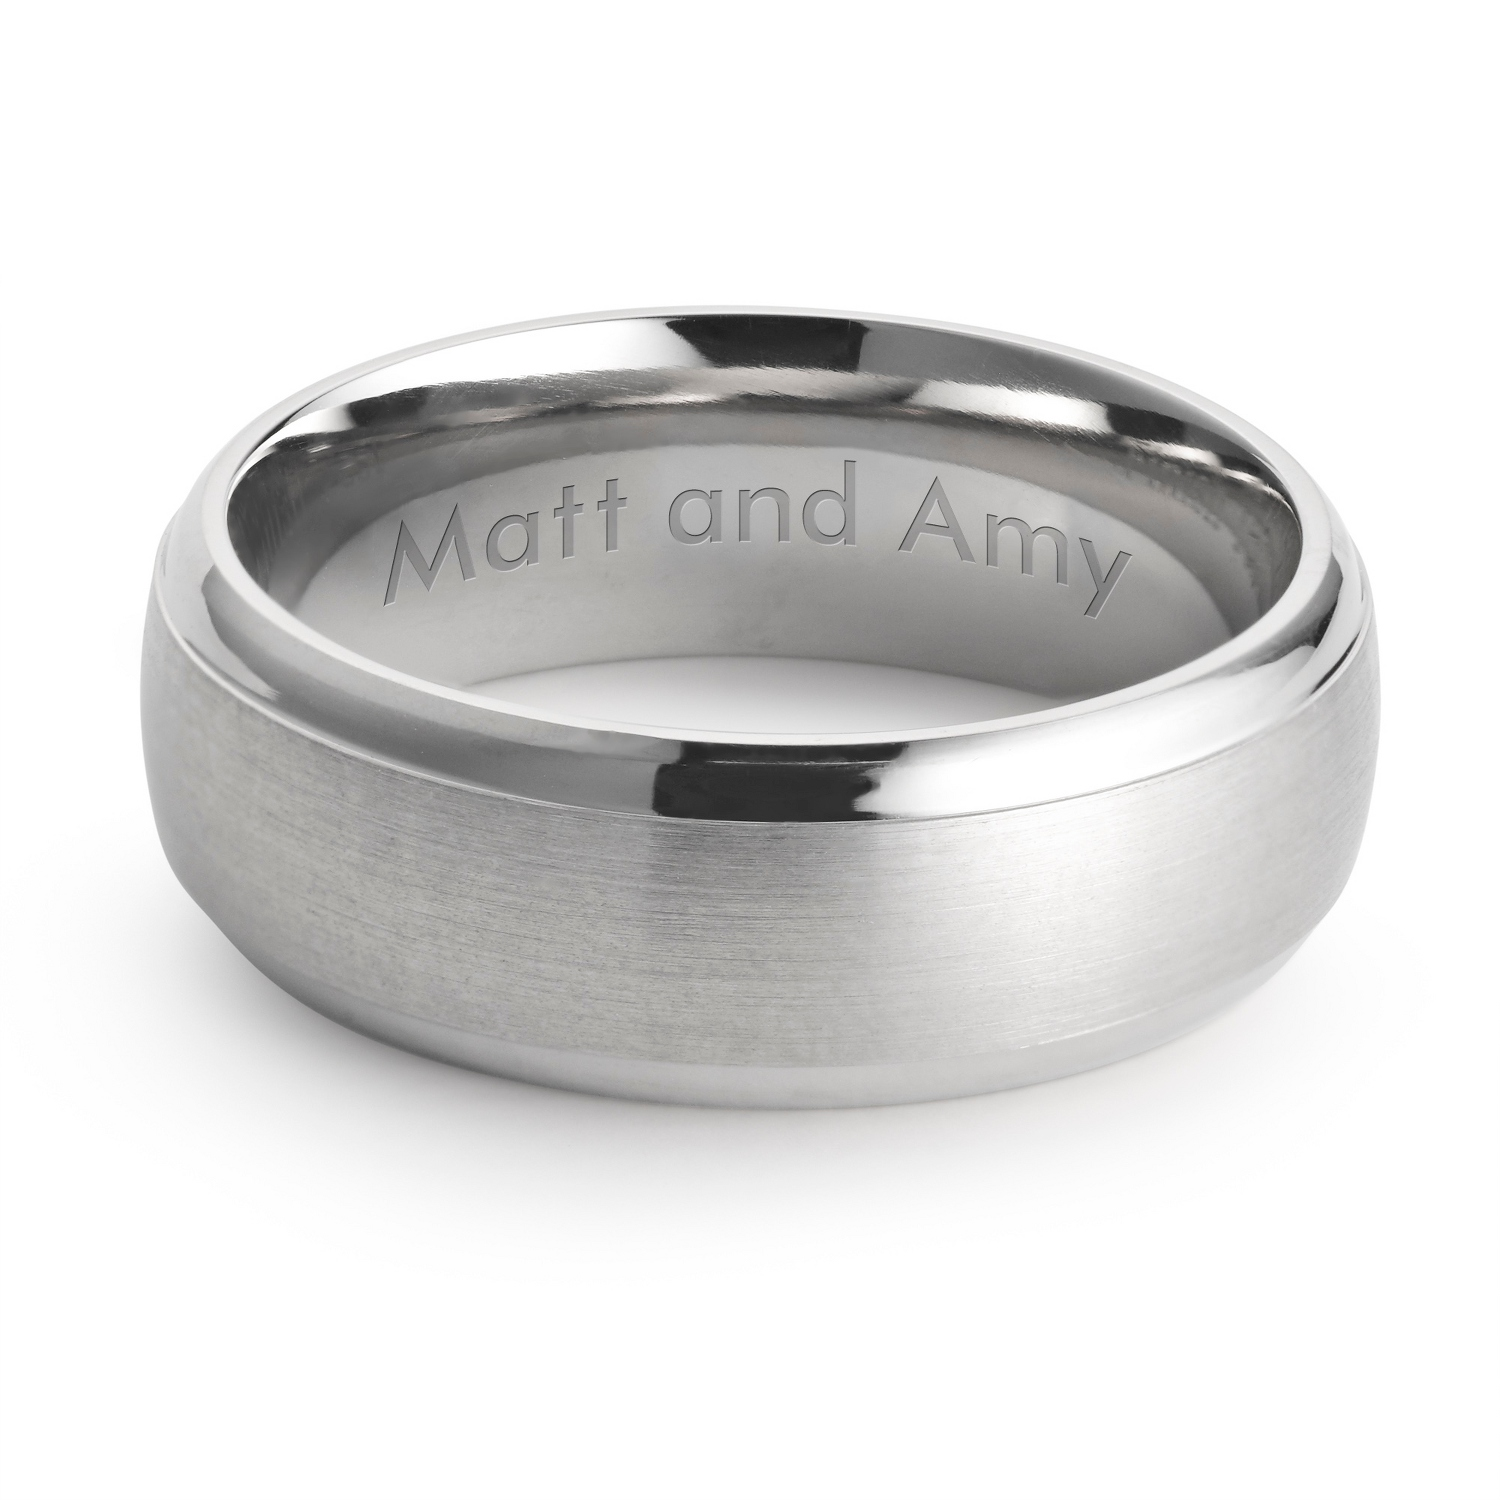 engraved mens rings at things remembered